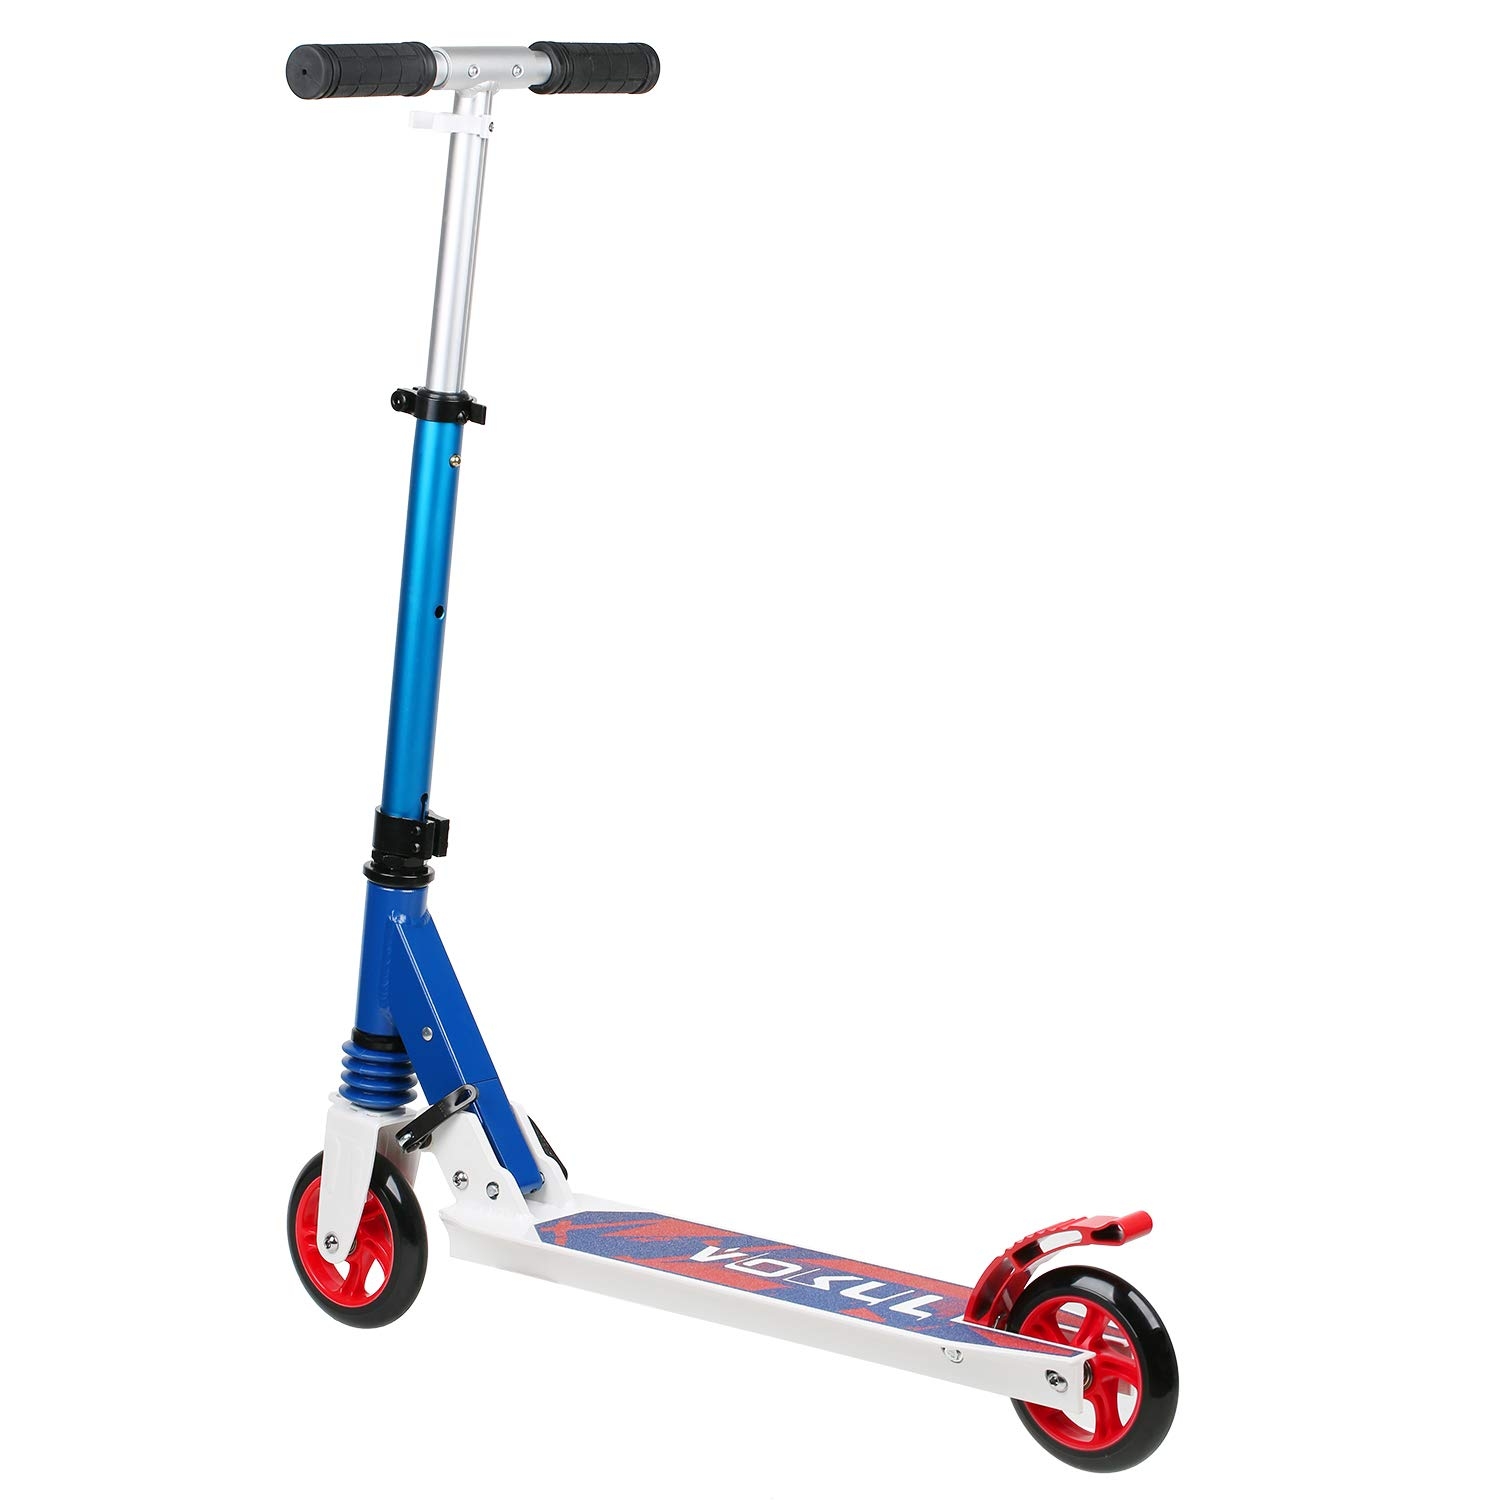 143lbs Capacity VOKUL Kick Scooter for Kids Boys Girls Ages 6-12 Adjustable Foldable Kick Scooter with Faster Big 125mm Scooter Wheels and Suspension Design